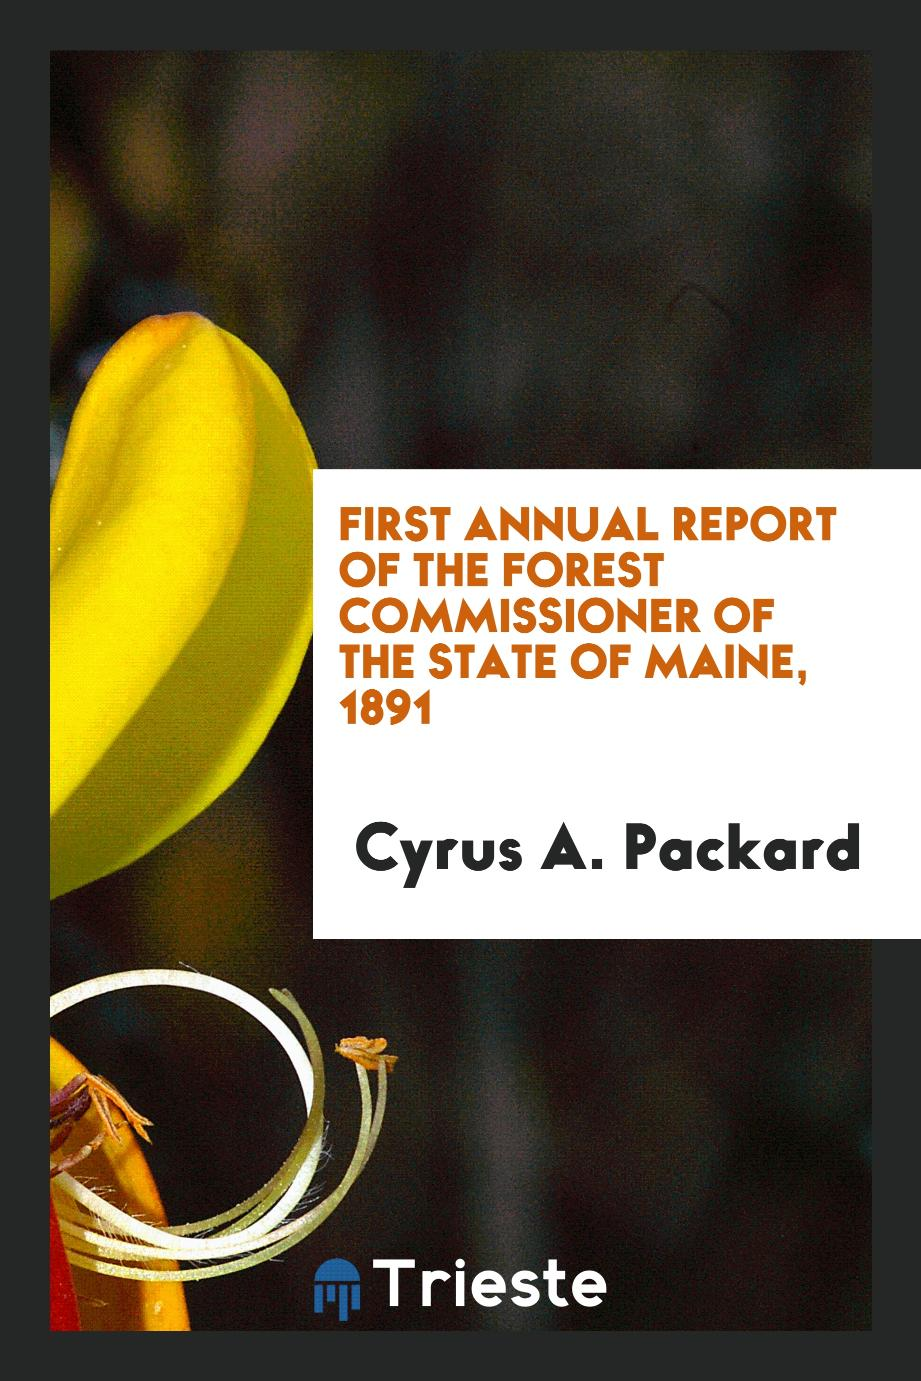 First Annual report of the Forest Commissioner of the state of Maine, 1891